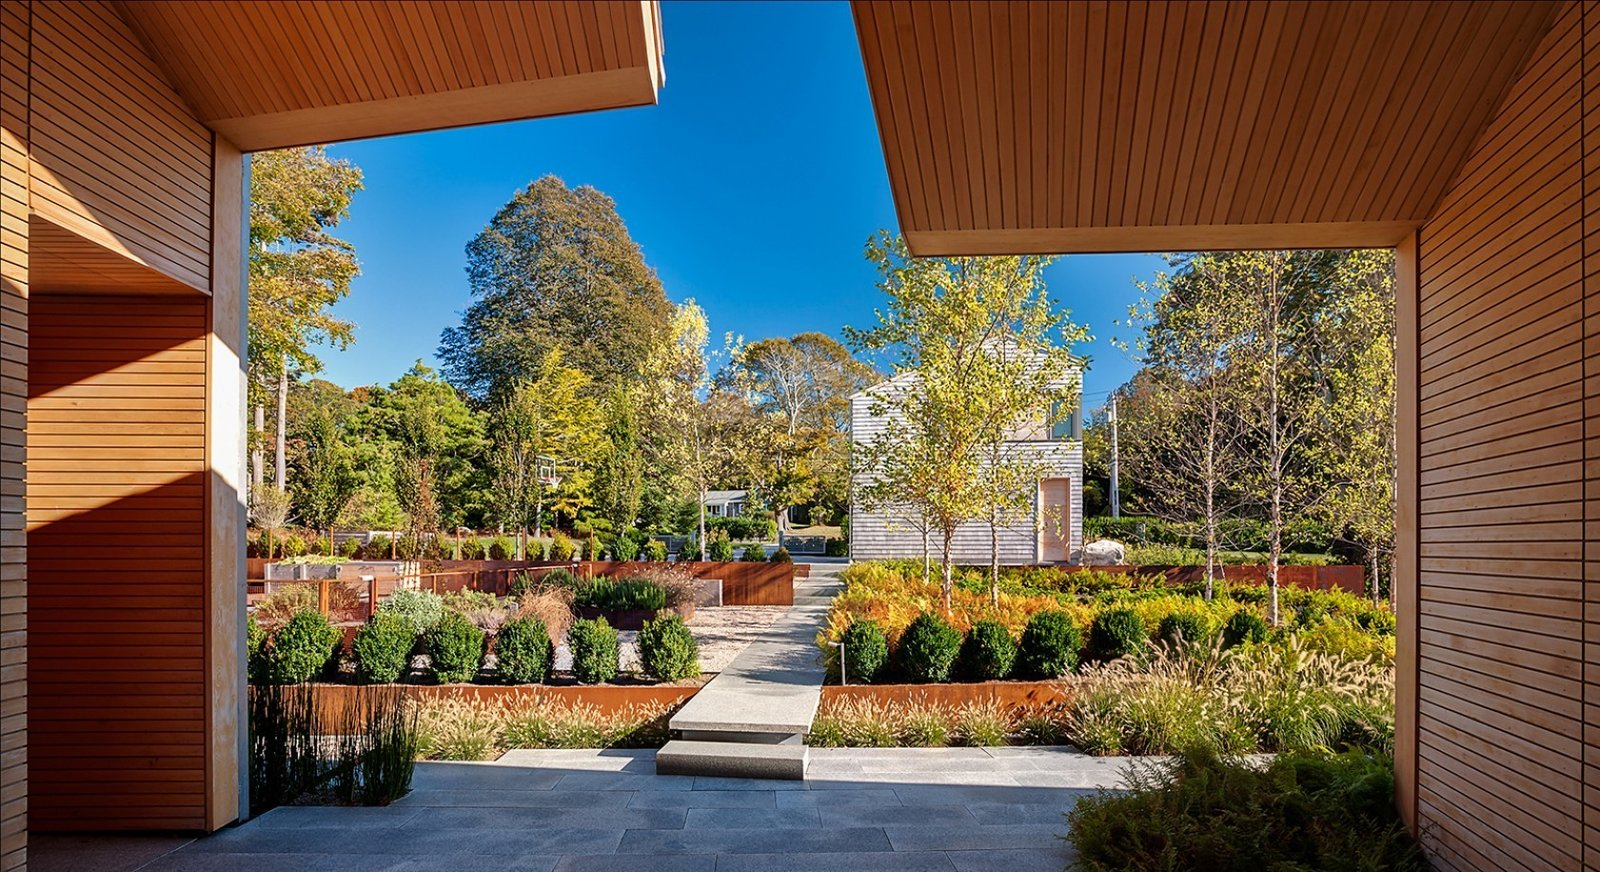 """#CoveHouse #exterior #outdoor #outside #walkway #modern #landscape #wood #panels   #details #angles #plants #trees #Massachusetts #LSSinterios #LeroyStreetStudio   All the """"Right"""" Angles from Cove House"""